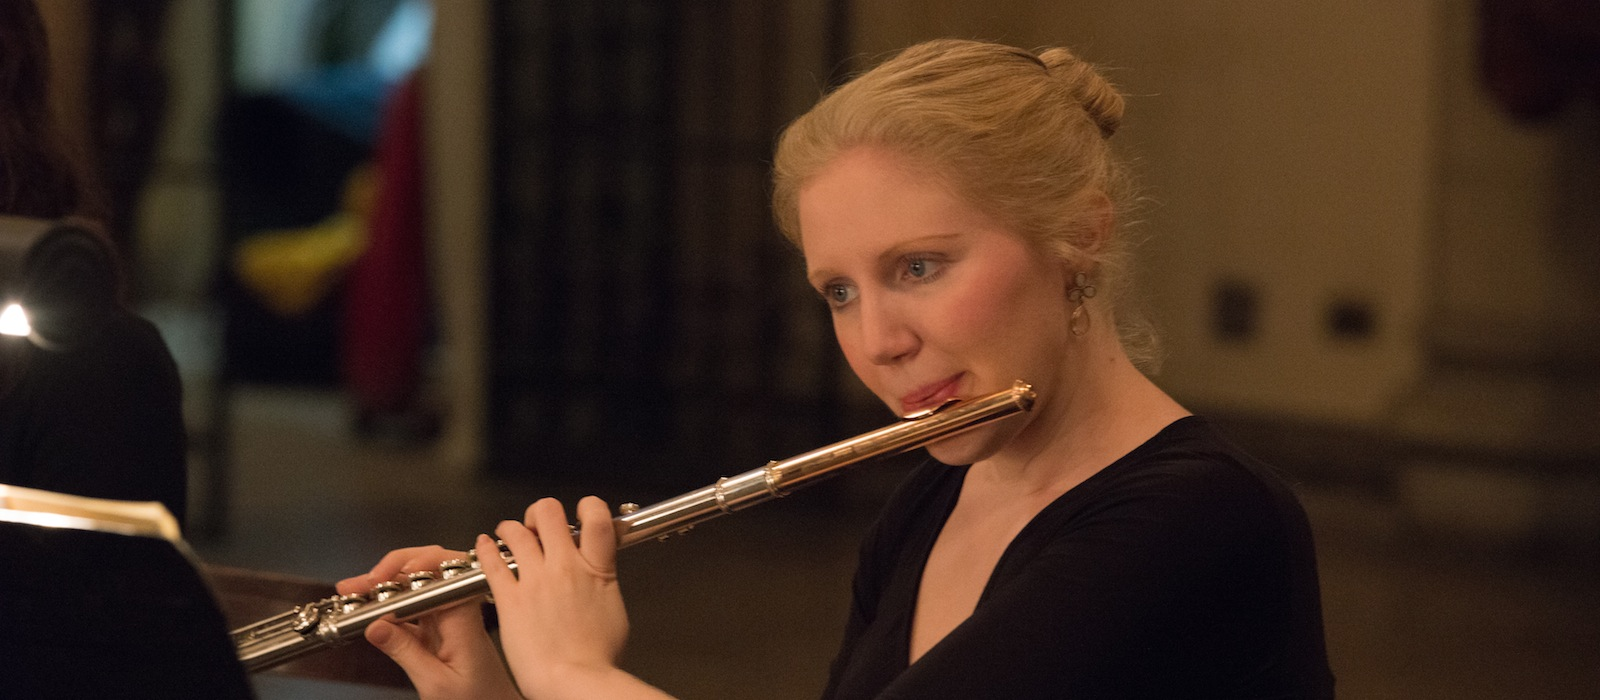 For Flutist, Making it is No Pipe Dream